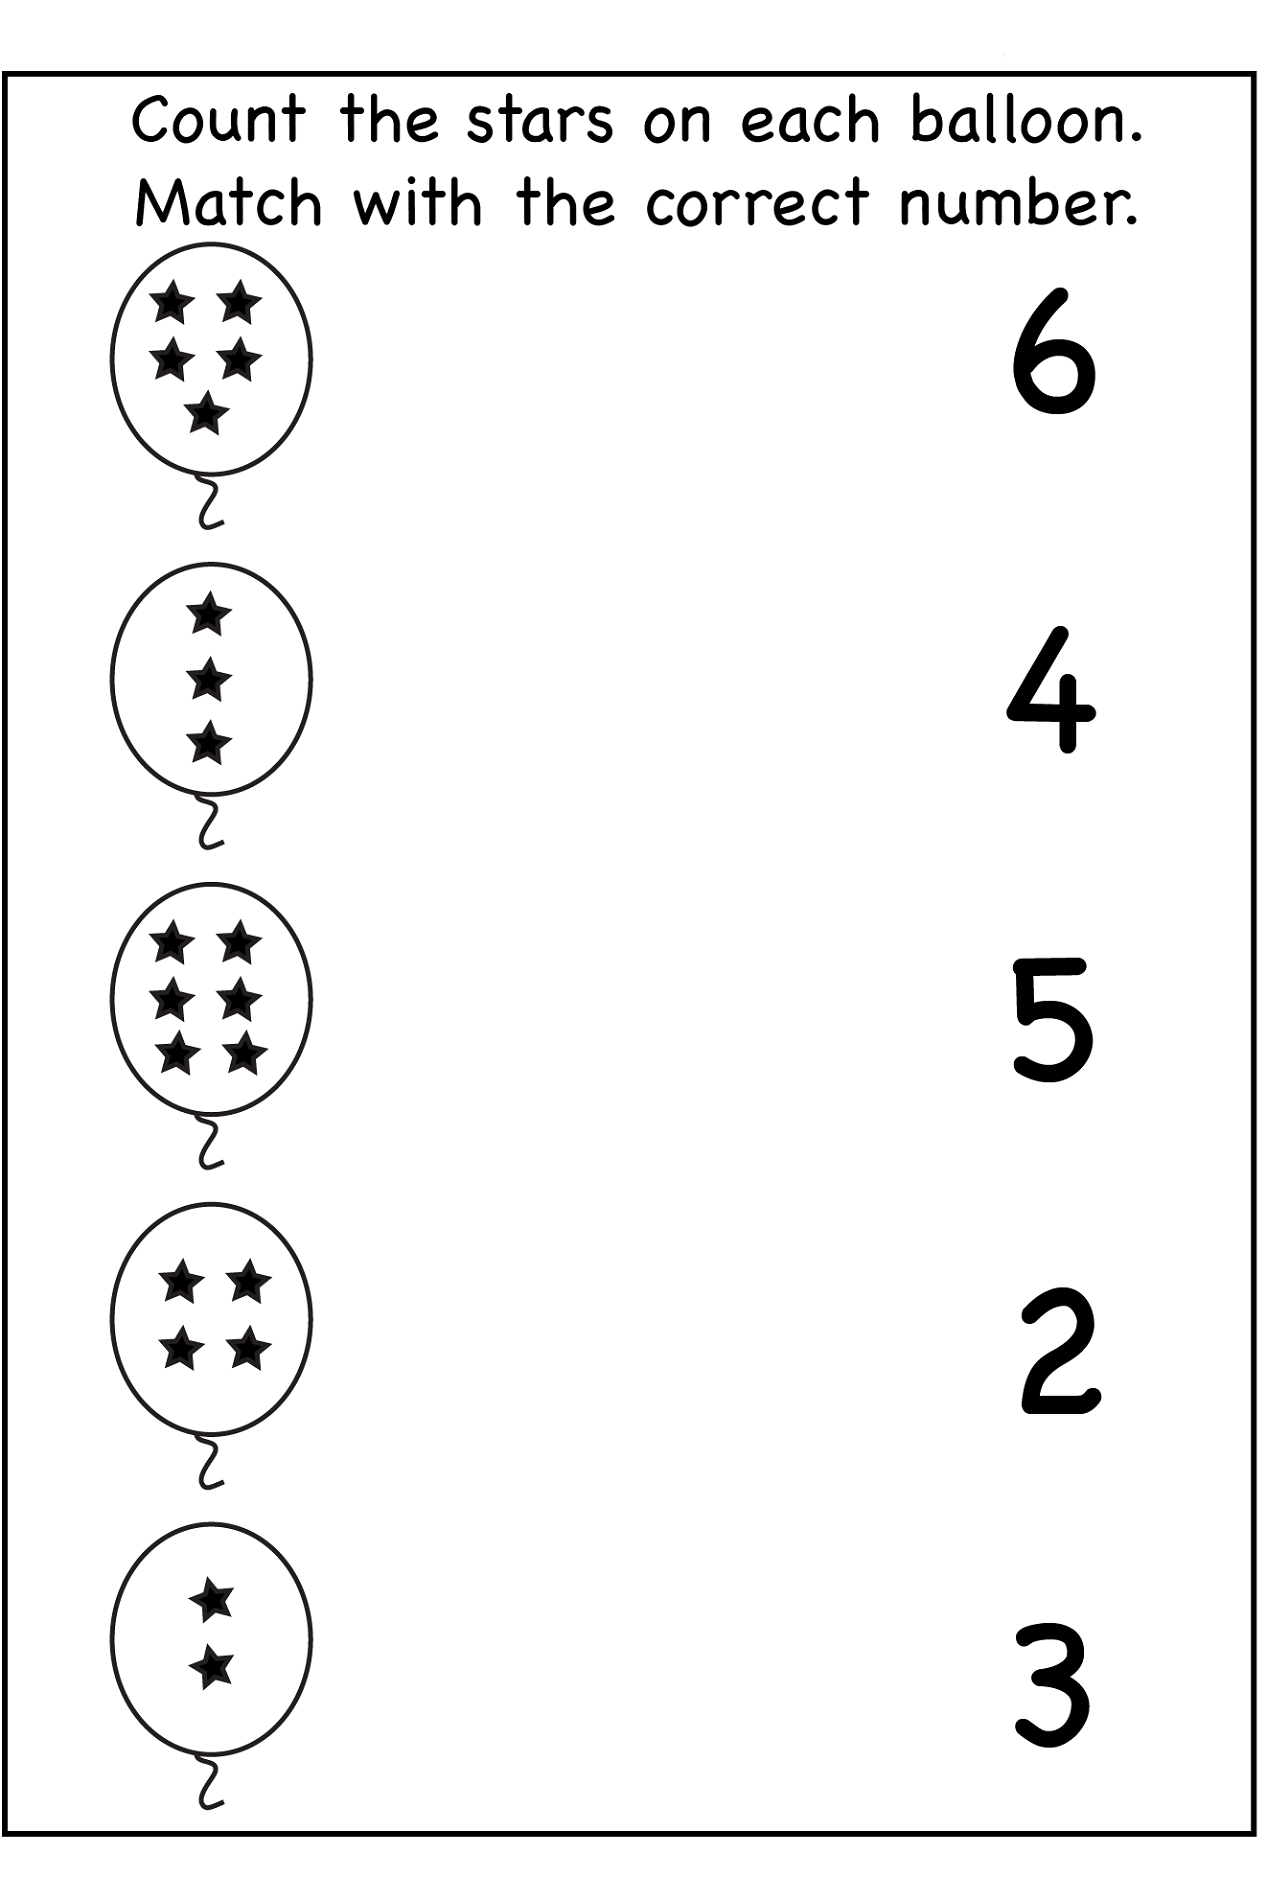 hight resolution of pre-k worksheets - Yahoo Image Search Results   Preschool math worksheets